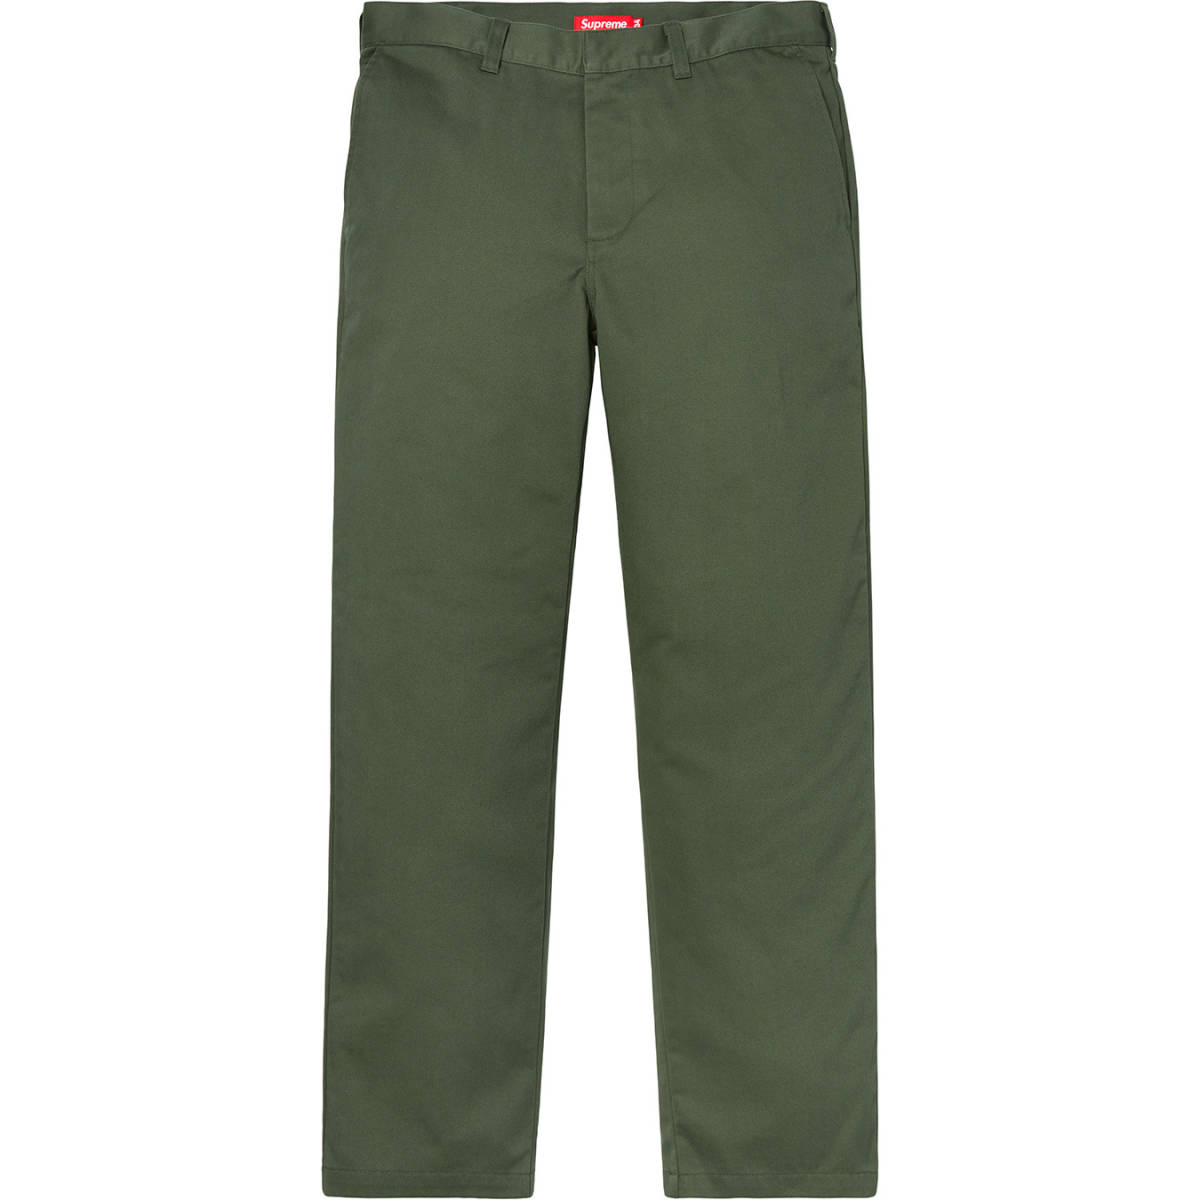 7c92cc17c59e 18 autumn winter Supreme Work Pant Green 32 new goods unused green 18FW work  pants